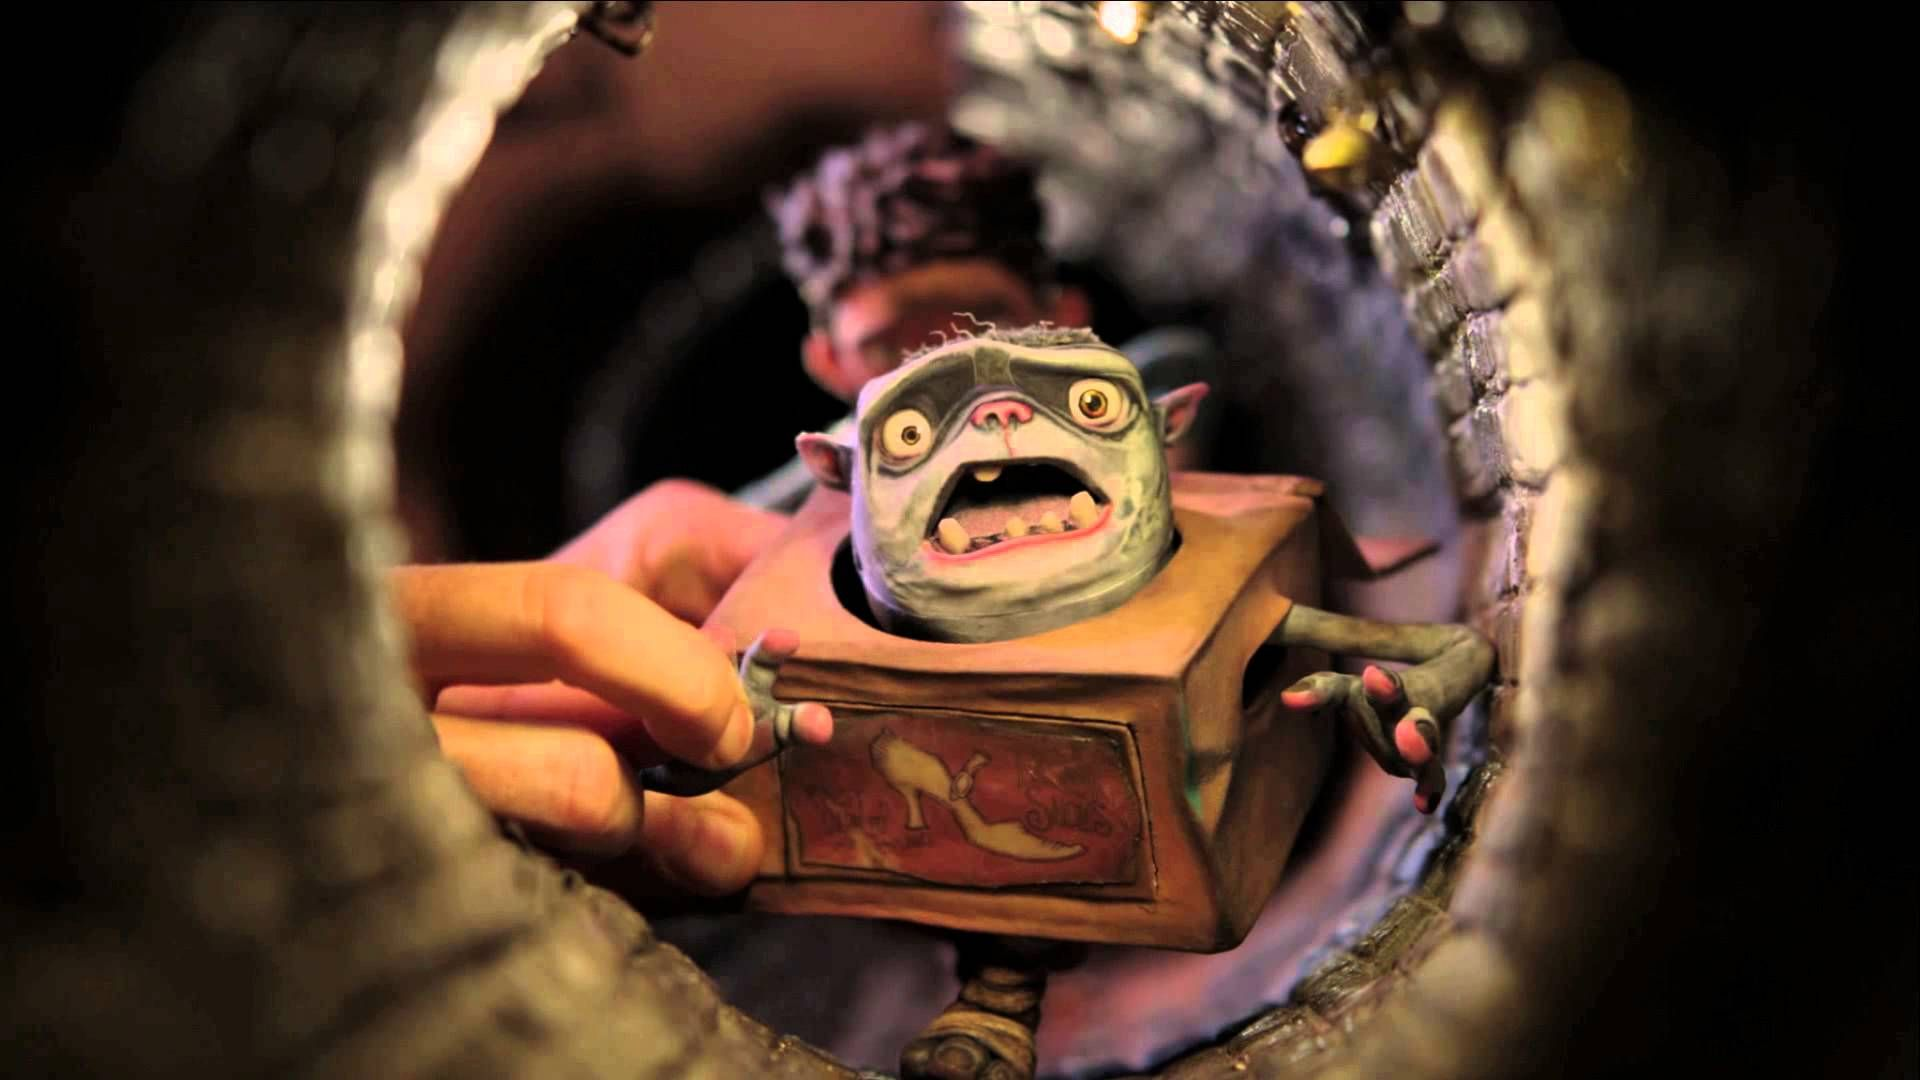 New Trailer Shows How Laika Animation Studio Created The Tiny Stop Motion World Of The Boxtrolls Stop Motion Animation Stop Motion Universal Pictures